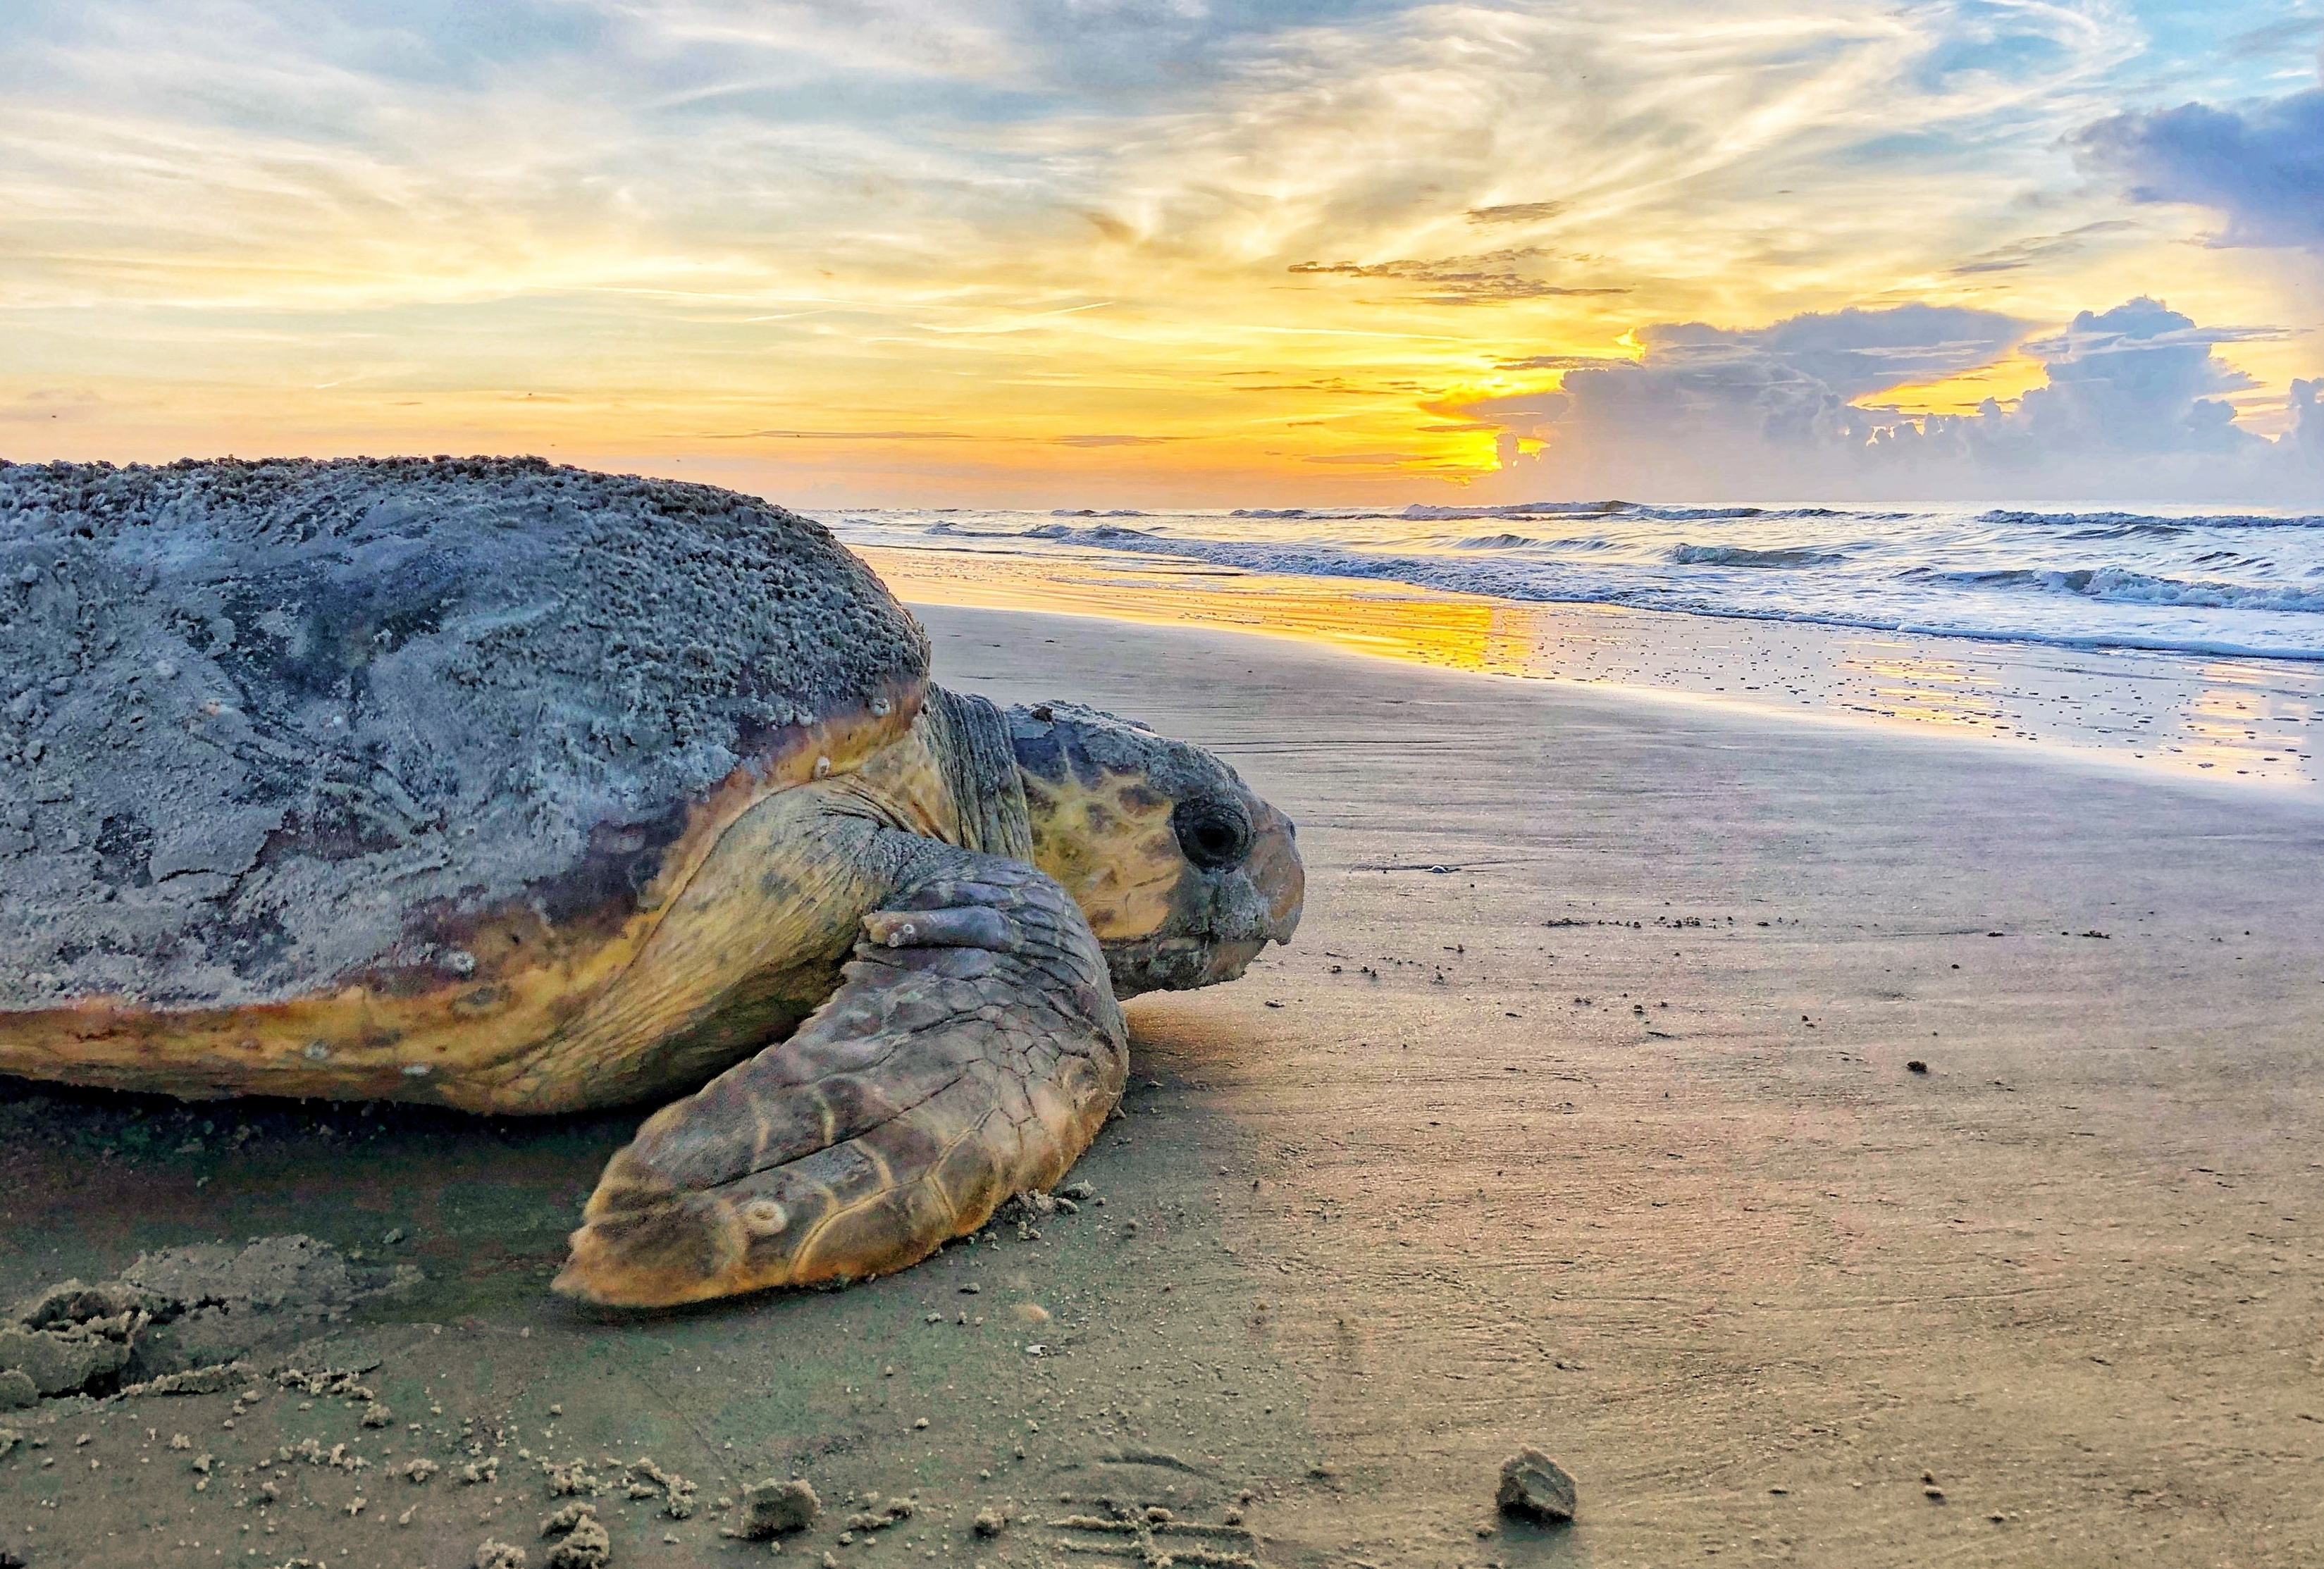 In this June 30, 2019, photo provided by the Georgia Department of Natural Resources, a loggerhead sea turtle returns to the ocean after nesting on Ossabaw Island, Ga. The giant, federally protected turtles are having an egg-laying boom on beaches in Georgia, South Carolina and North Carolina, where scientists have counted record numbers of nests this summer. (Georgia Department of Natural Resources via AP)